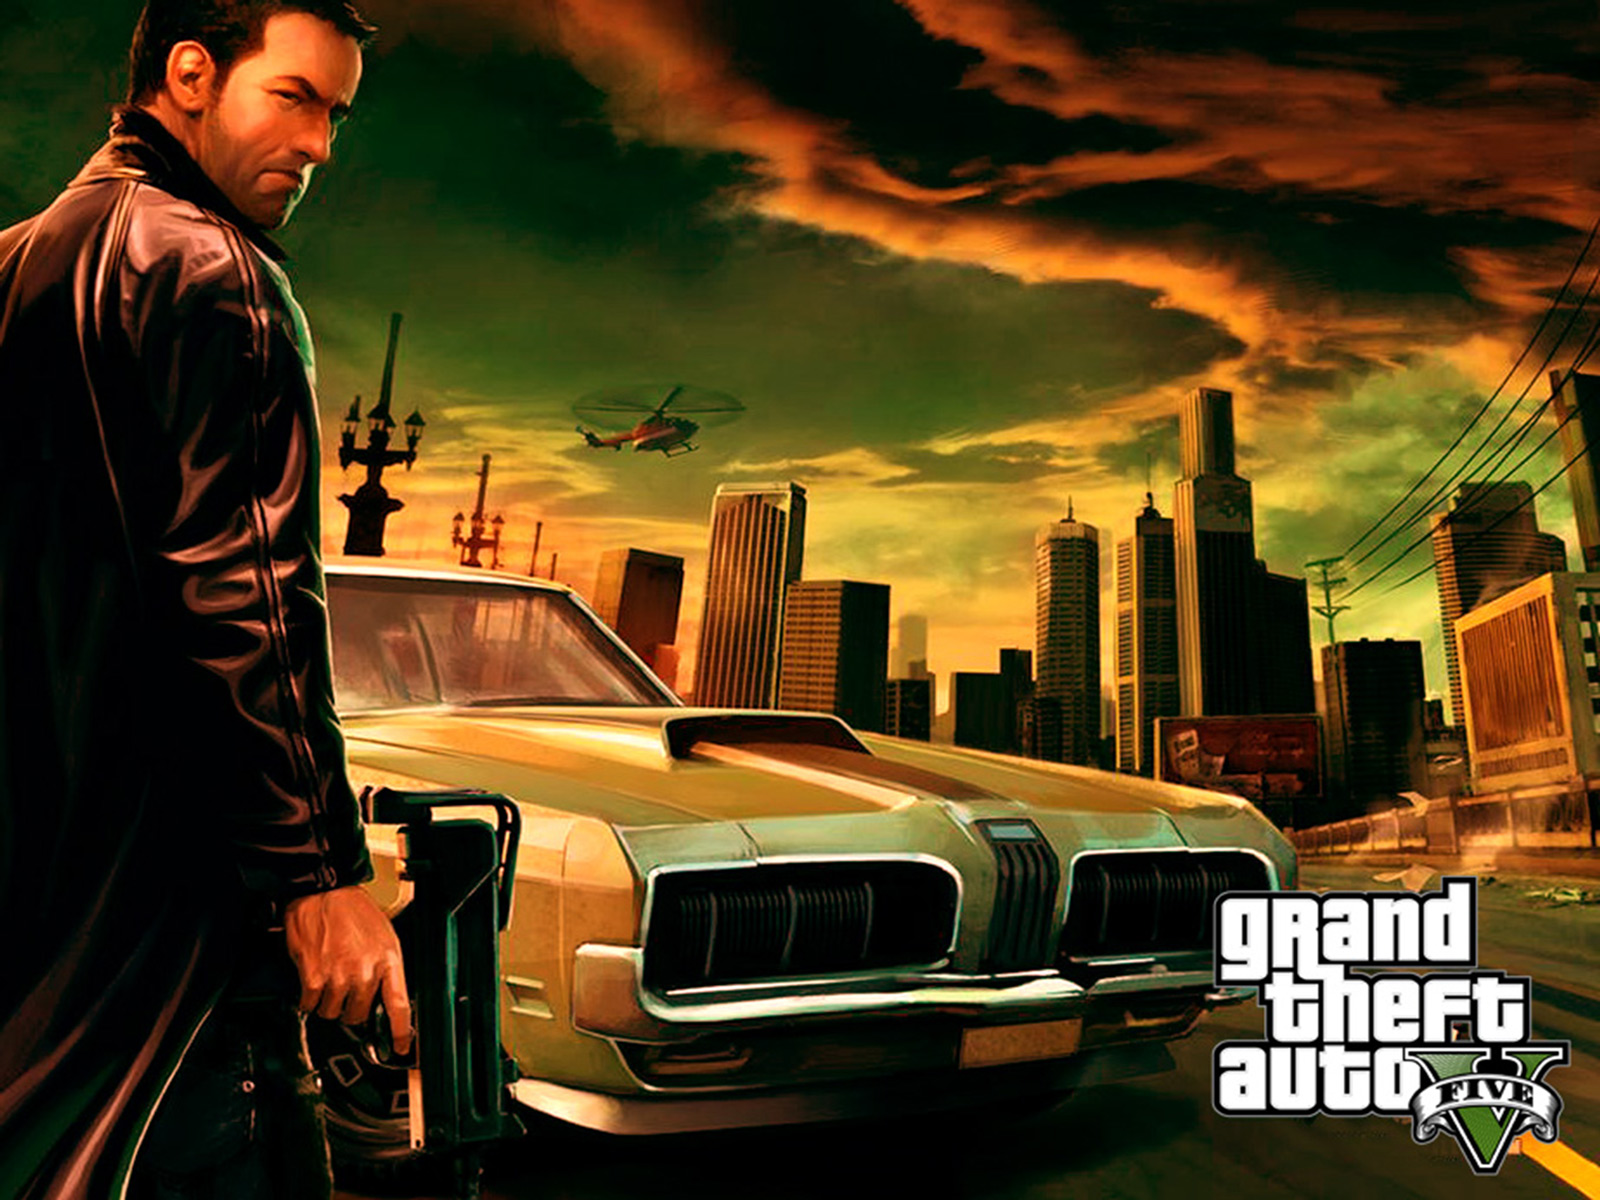 50 gta v wallpaper 1080p hd on wallpapersafari - Gta v wallpaper ...